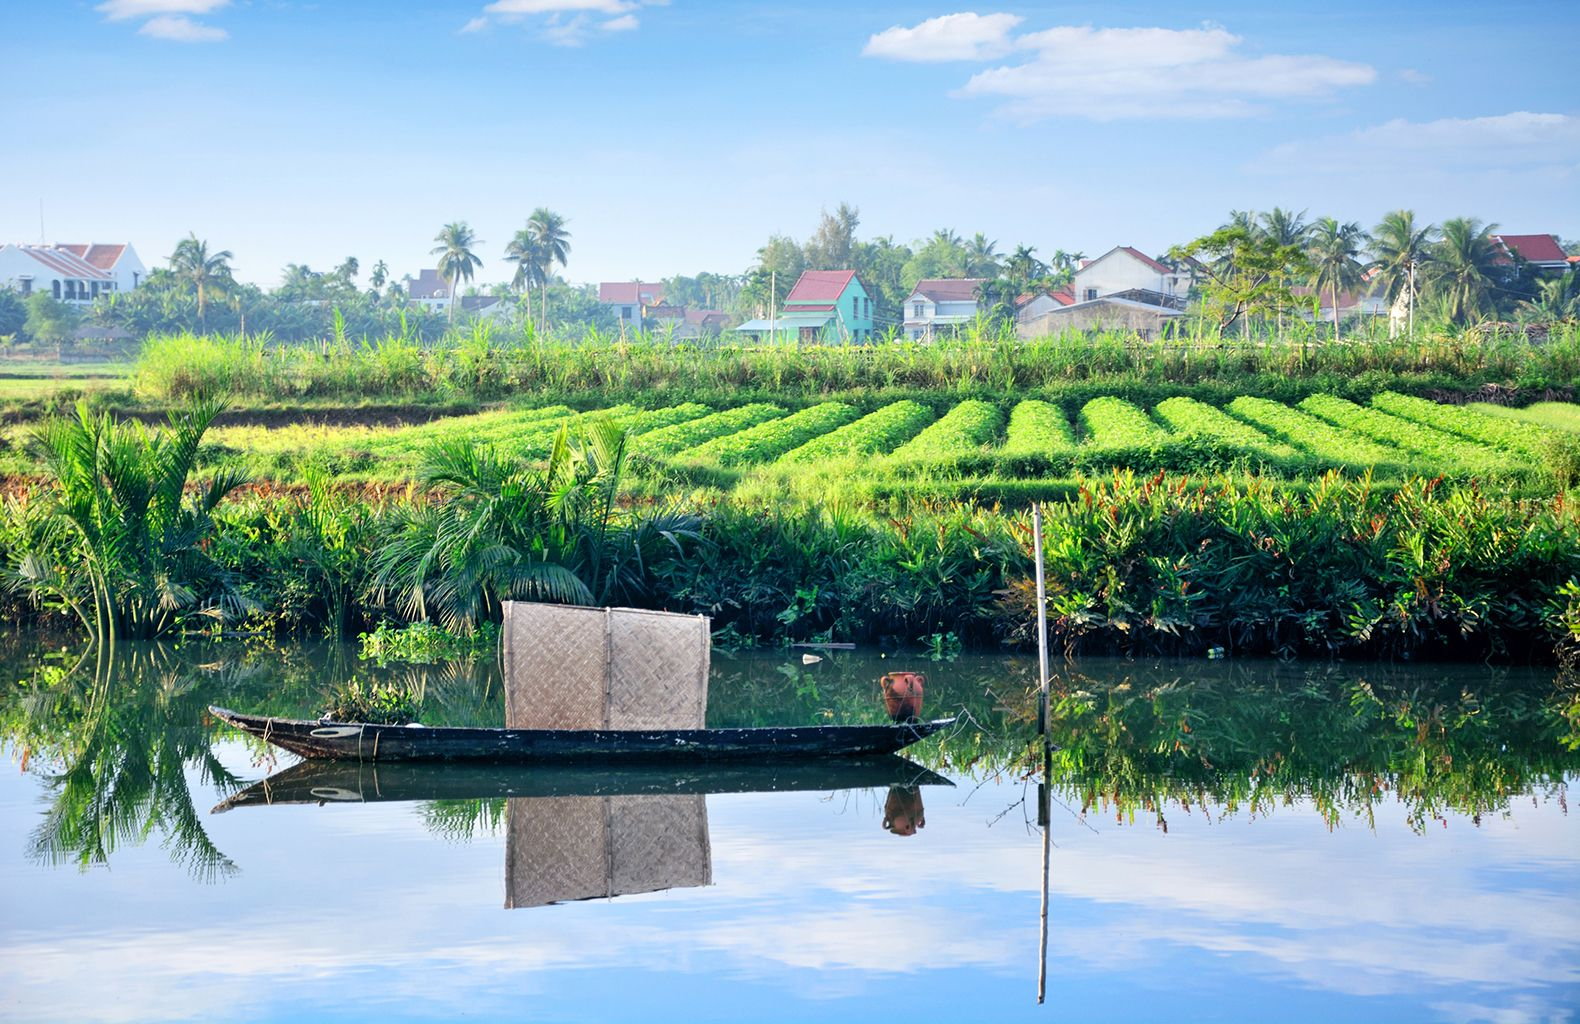 Rural landscape and small boat in Vietnam village. Composite photo